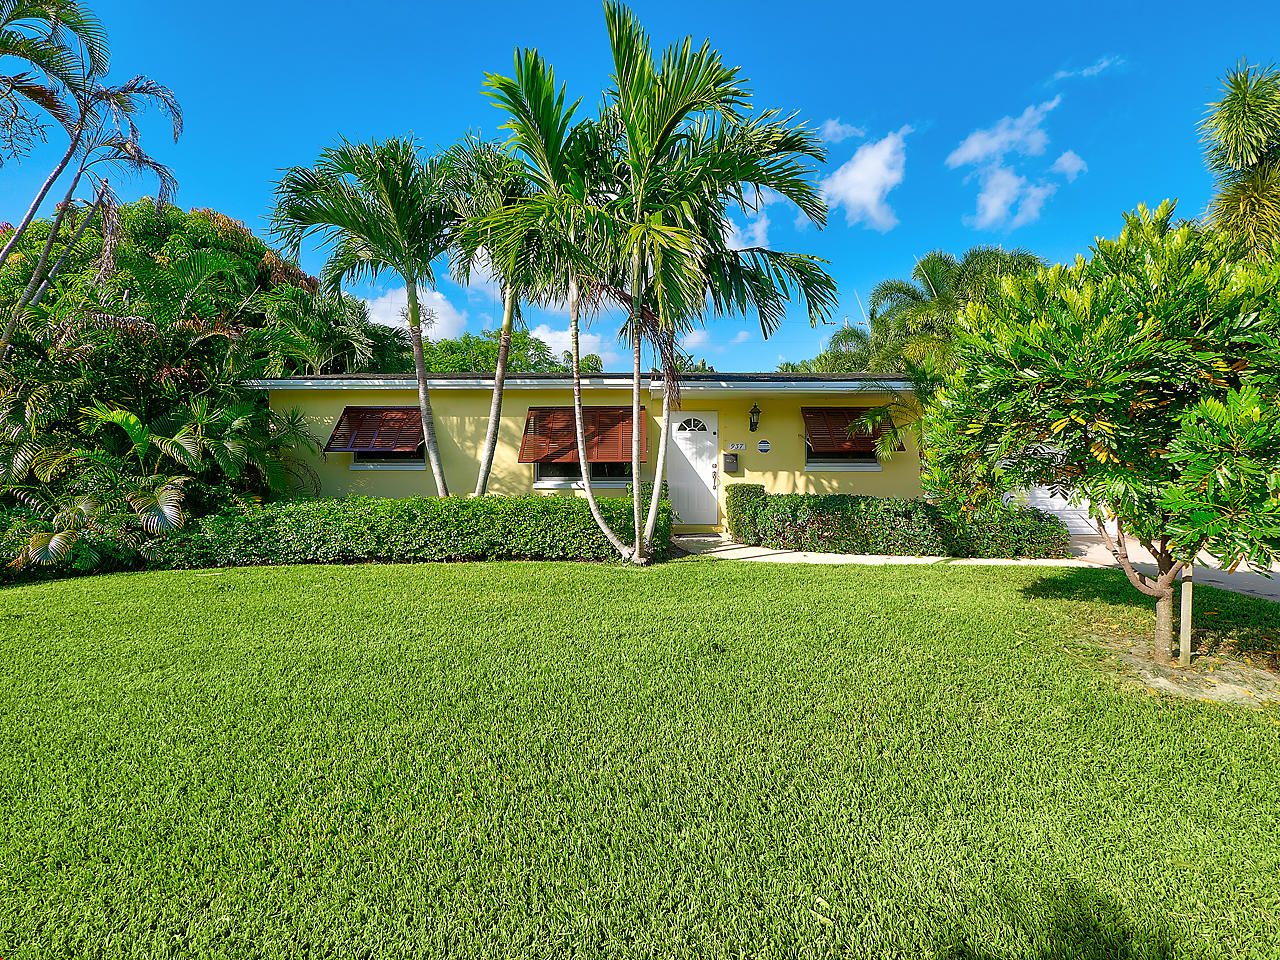 937 Lighthouse Drive, North Palm Beach, Florida 33408, 3 Bedrooms Bedrooms, ,2 BathroomsBathrooms,A,Single family,Lighthouse,RX-10547831